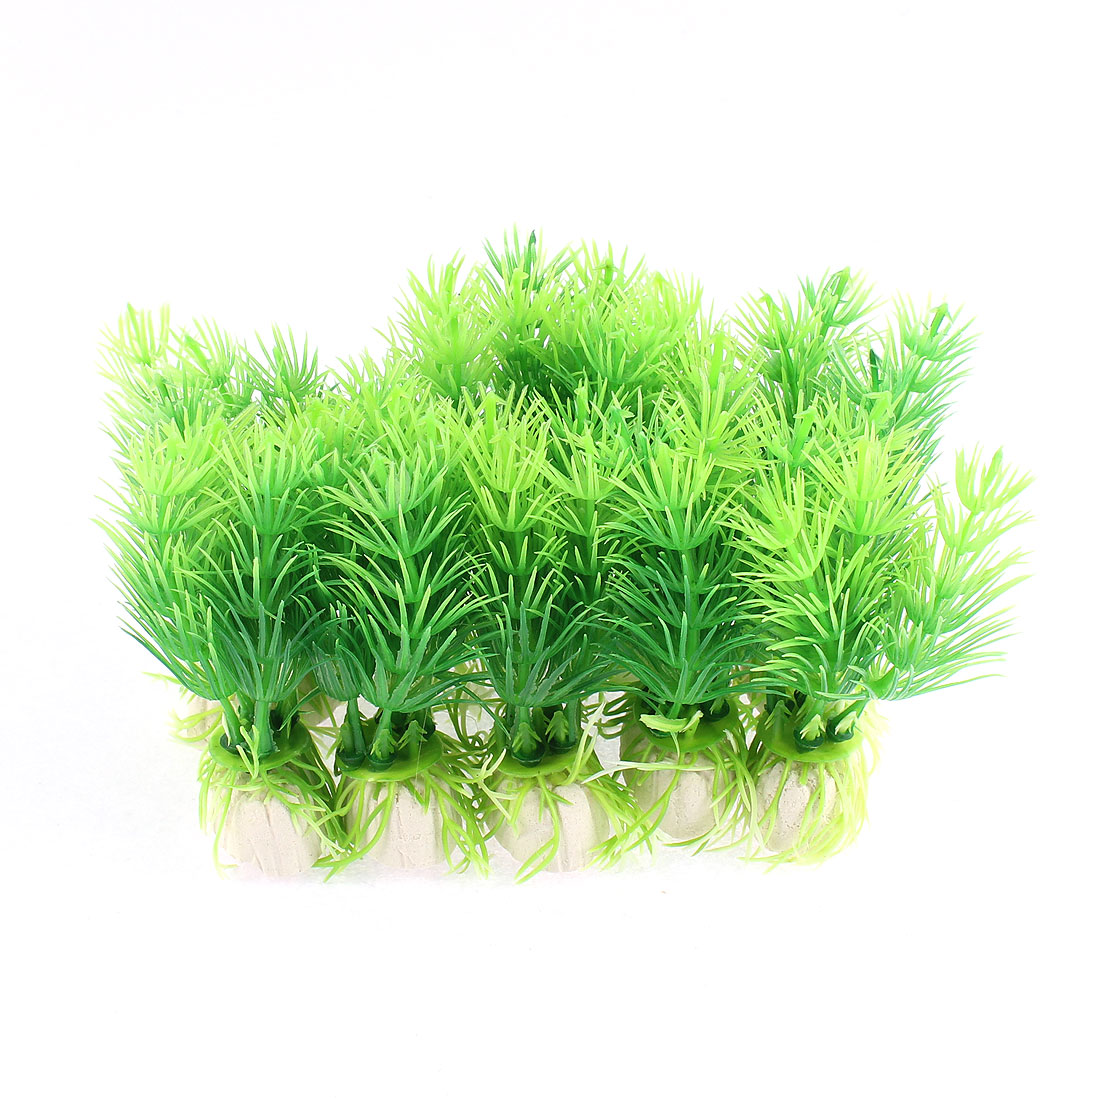 Aquarium Tank Green Artificial Plastic Grass Plant Decor Landscape 10pcs